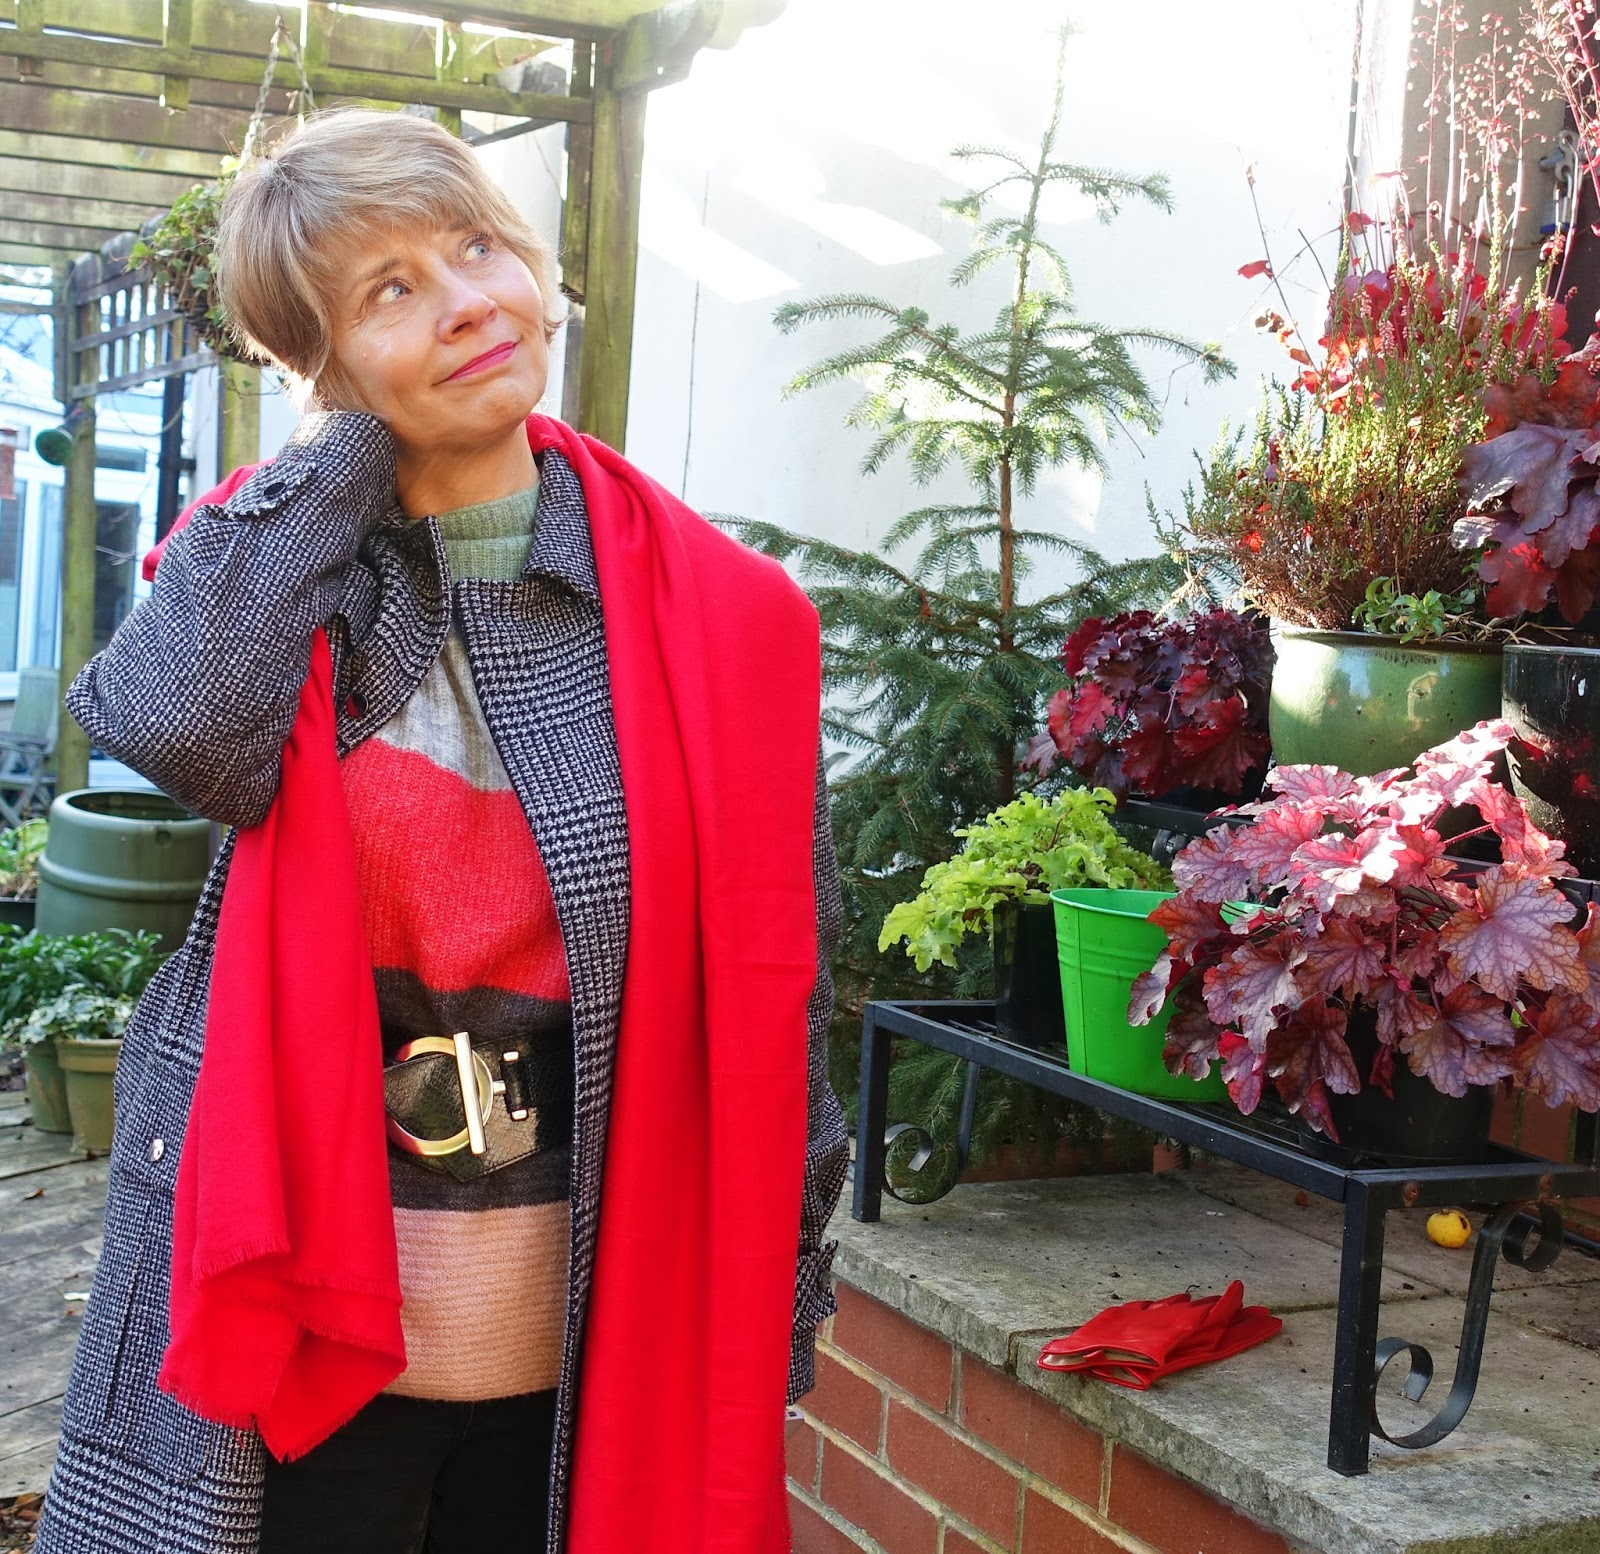 Image showing an over 50s woman in black and white check coat and red accessories for winter 2017 on a chilly day in the garden.